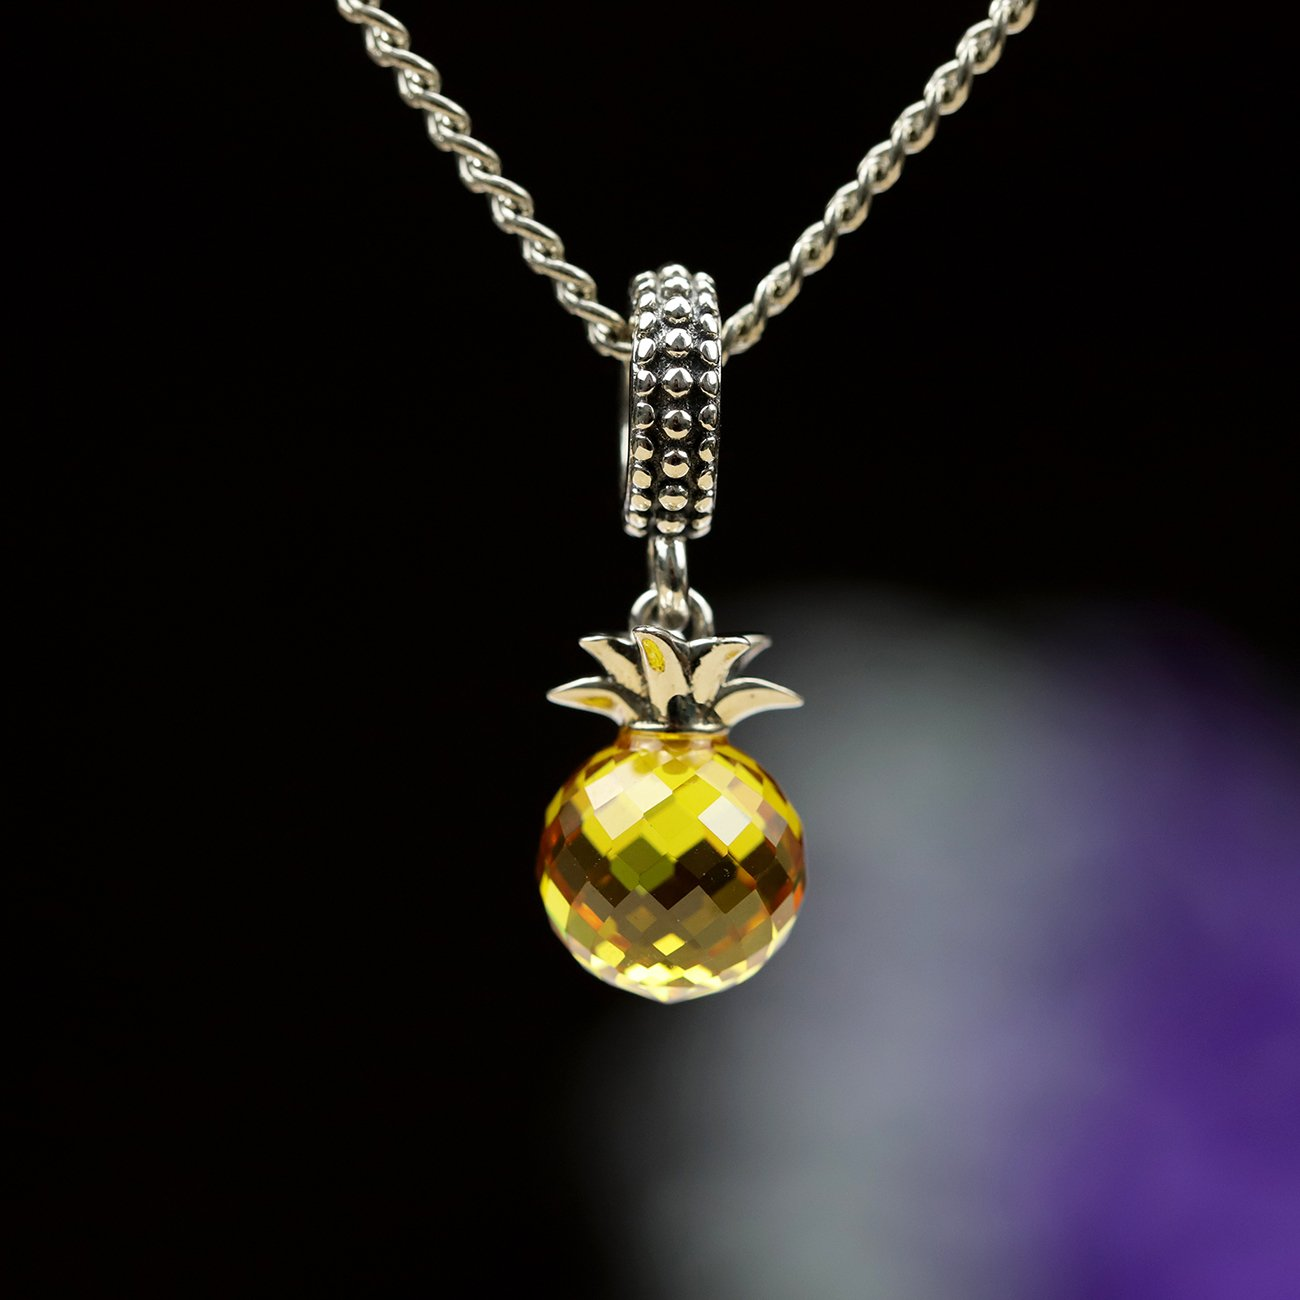 Stunning Pineapple Pendant with Chain